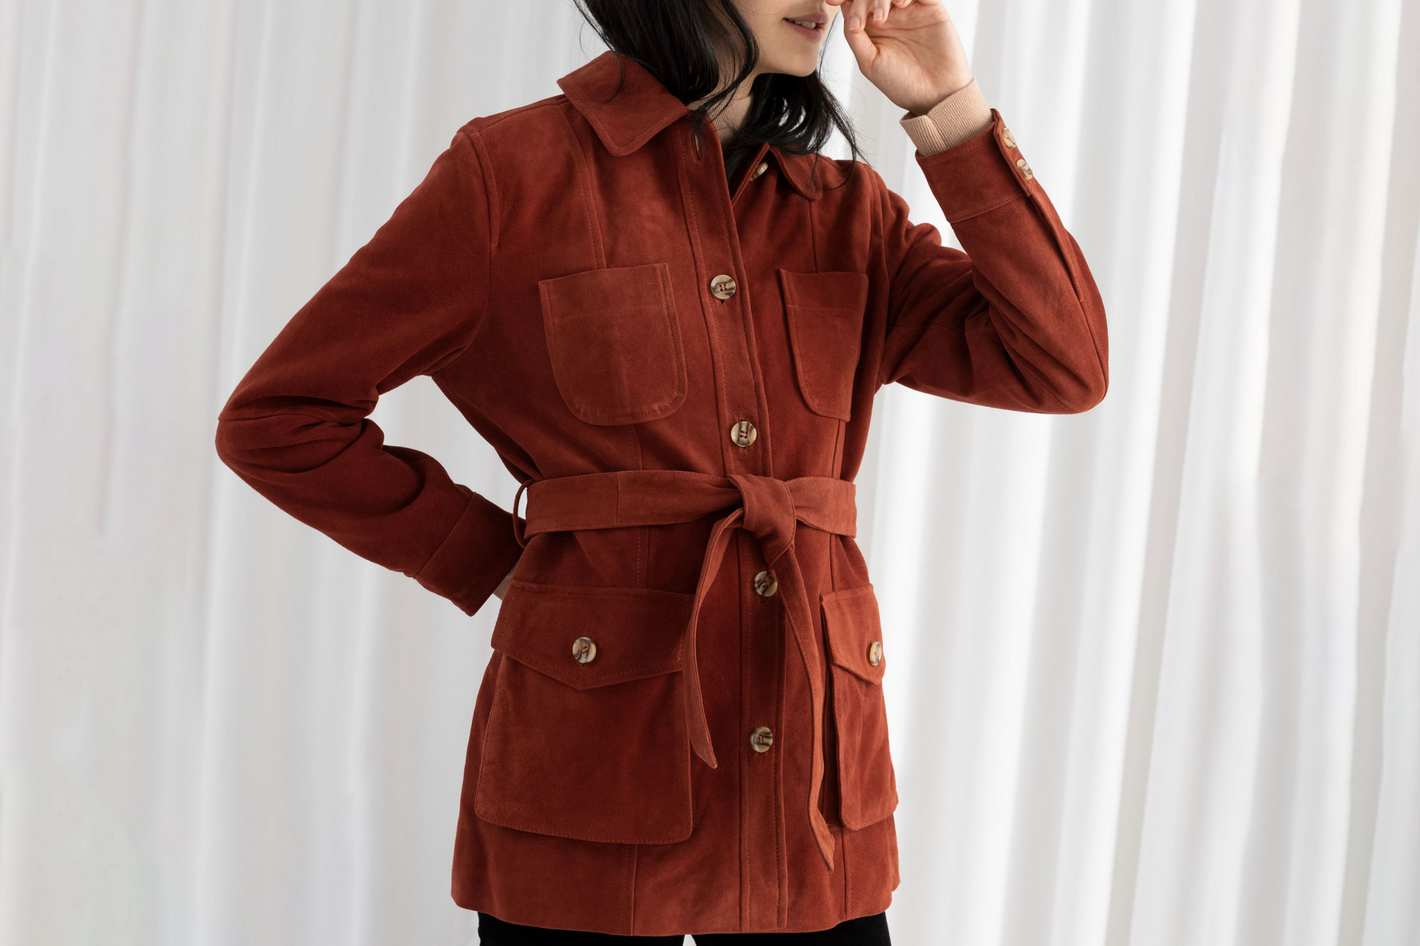 & Other Stories Belted Suede Workwear Jacket